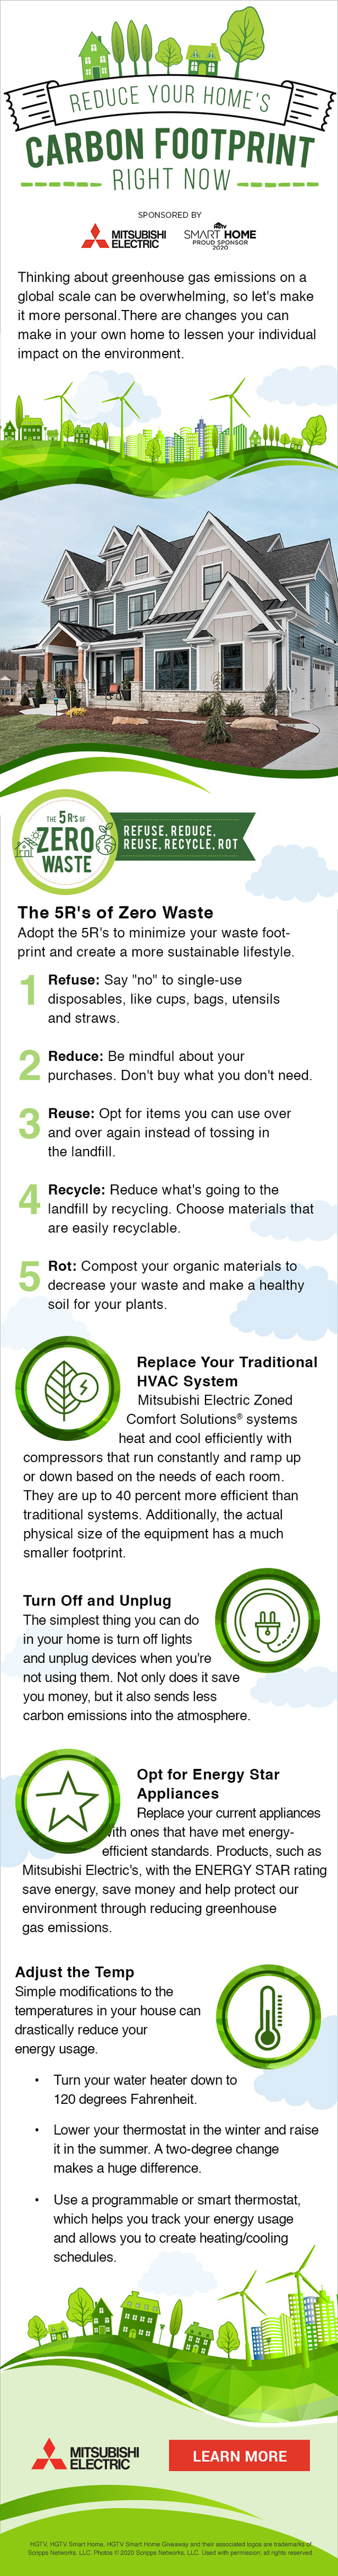 Reduce Your Home's Carbon Footprint Right Now